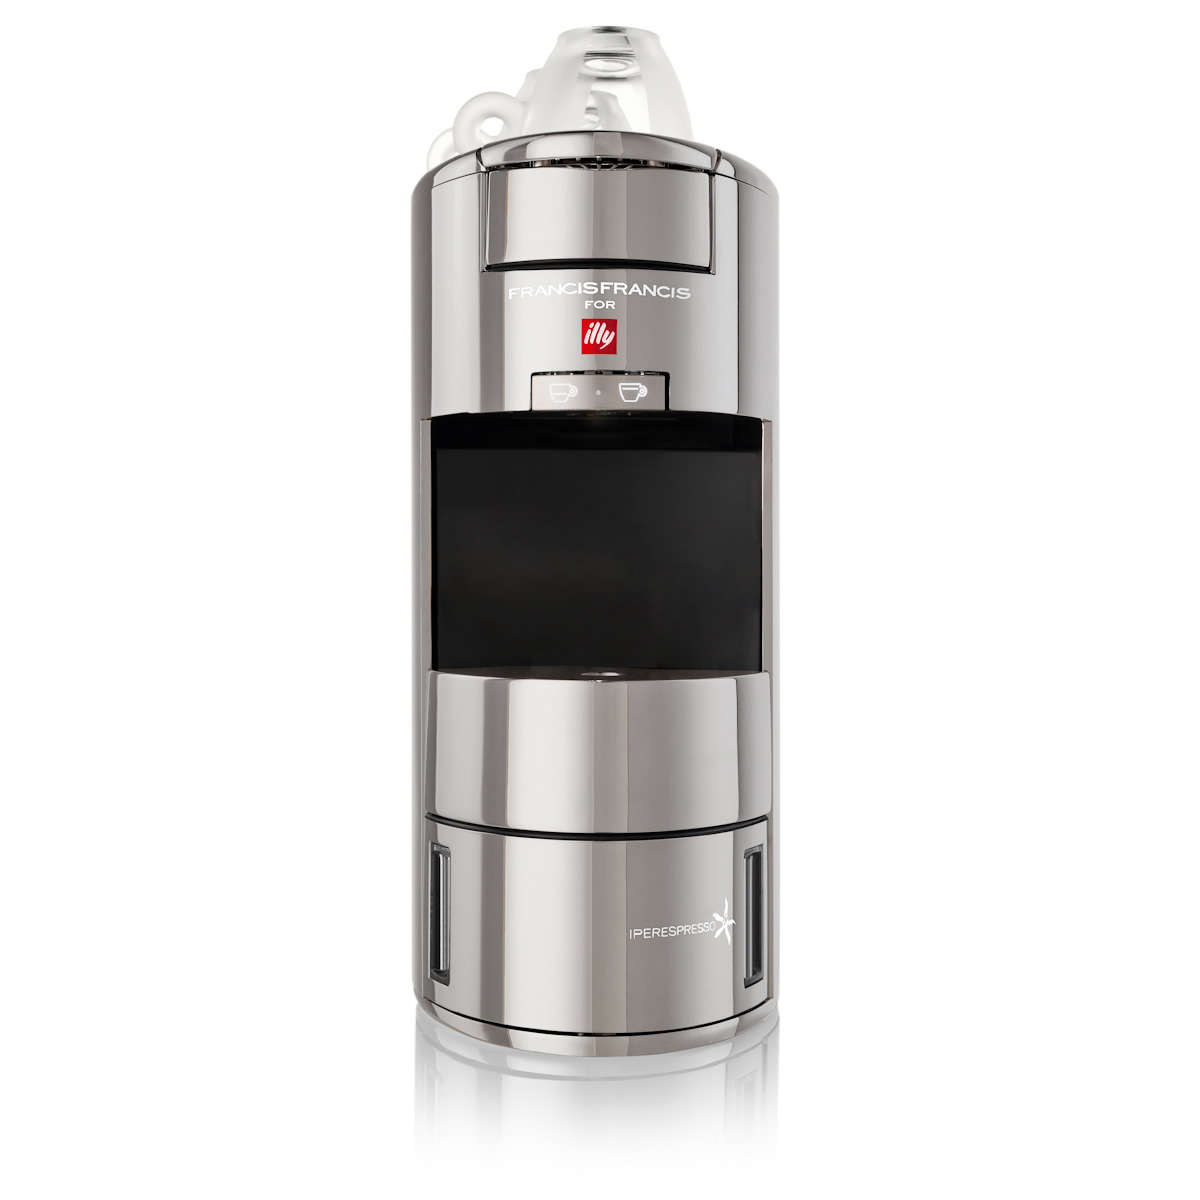 Francis Francis! X9 for Illy iperEspresso Machine Chrome ...